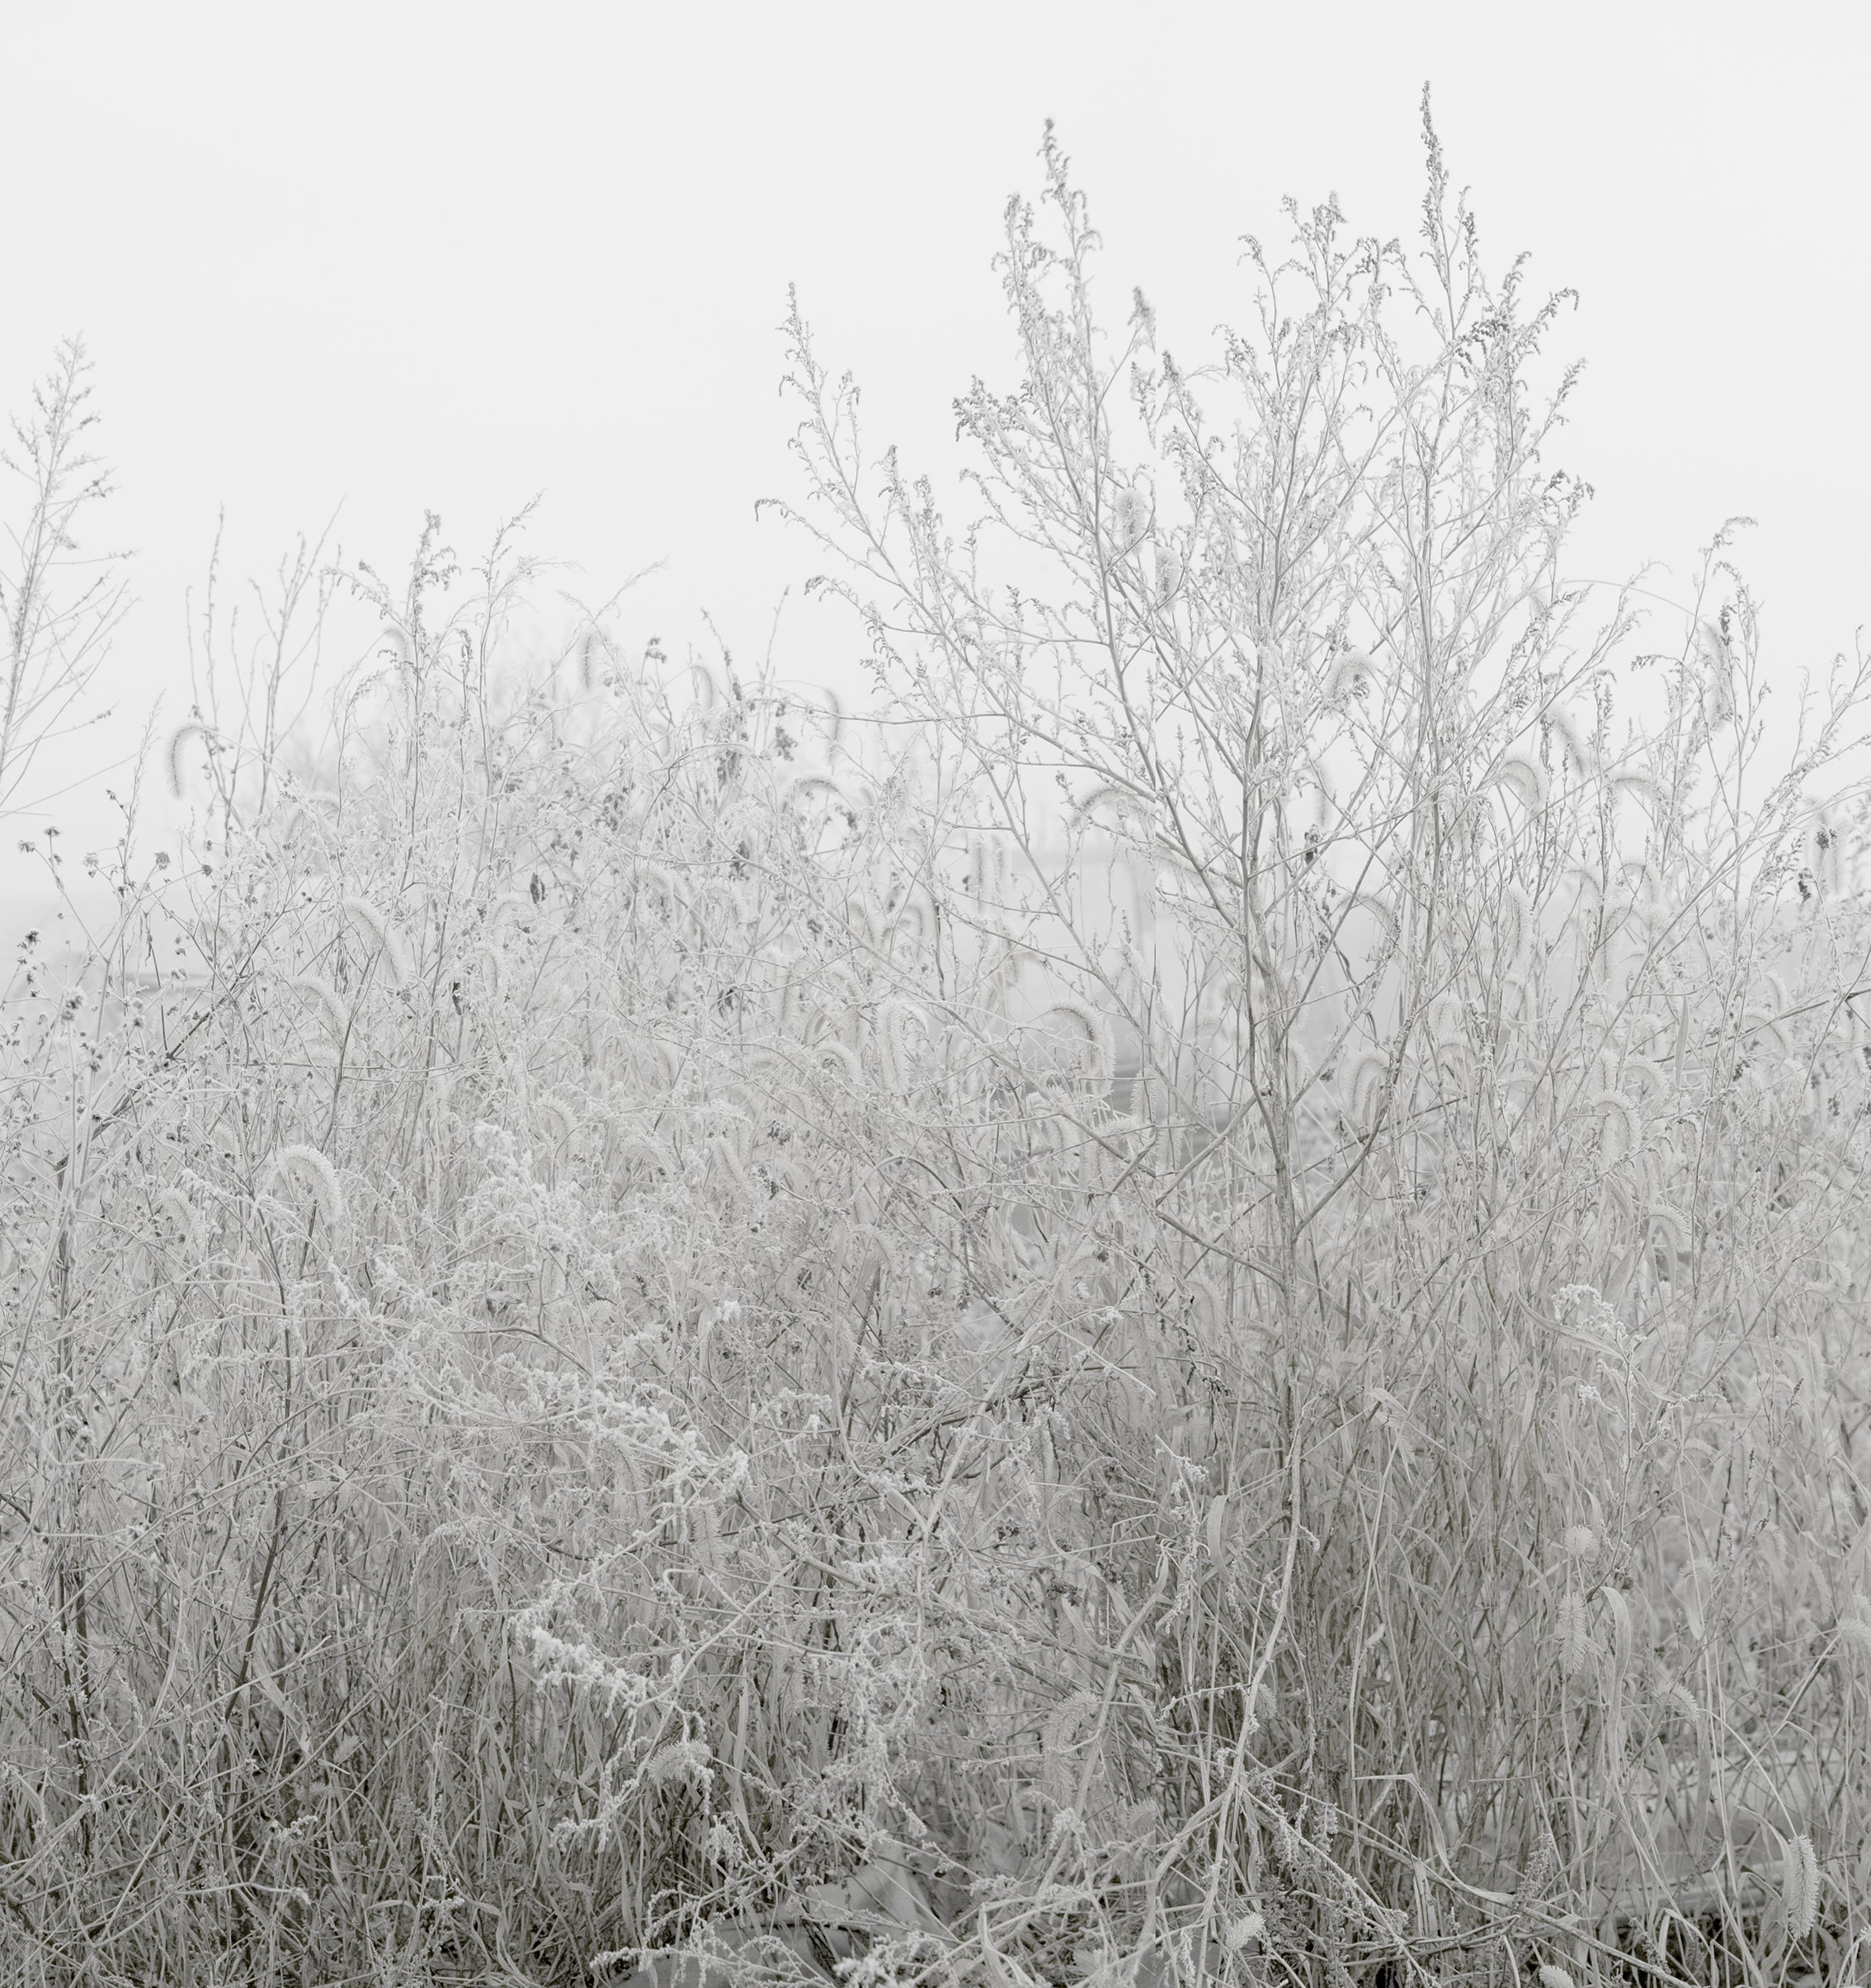 Honggoo Kang, Mist and Frost 1, Digital Print, 108x92cm, 2012, ONE AND J